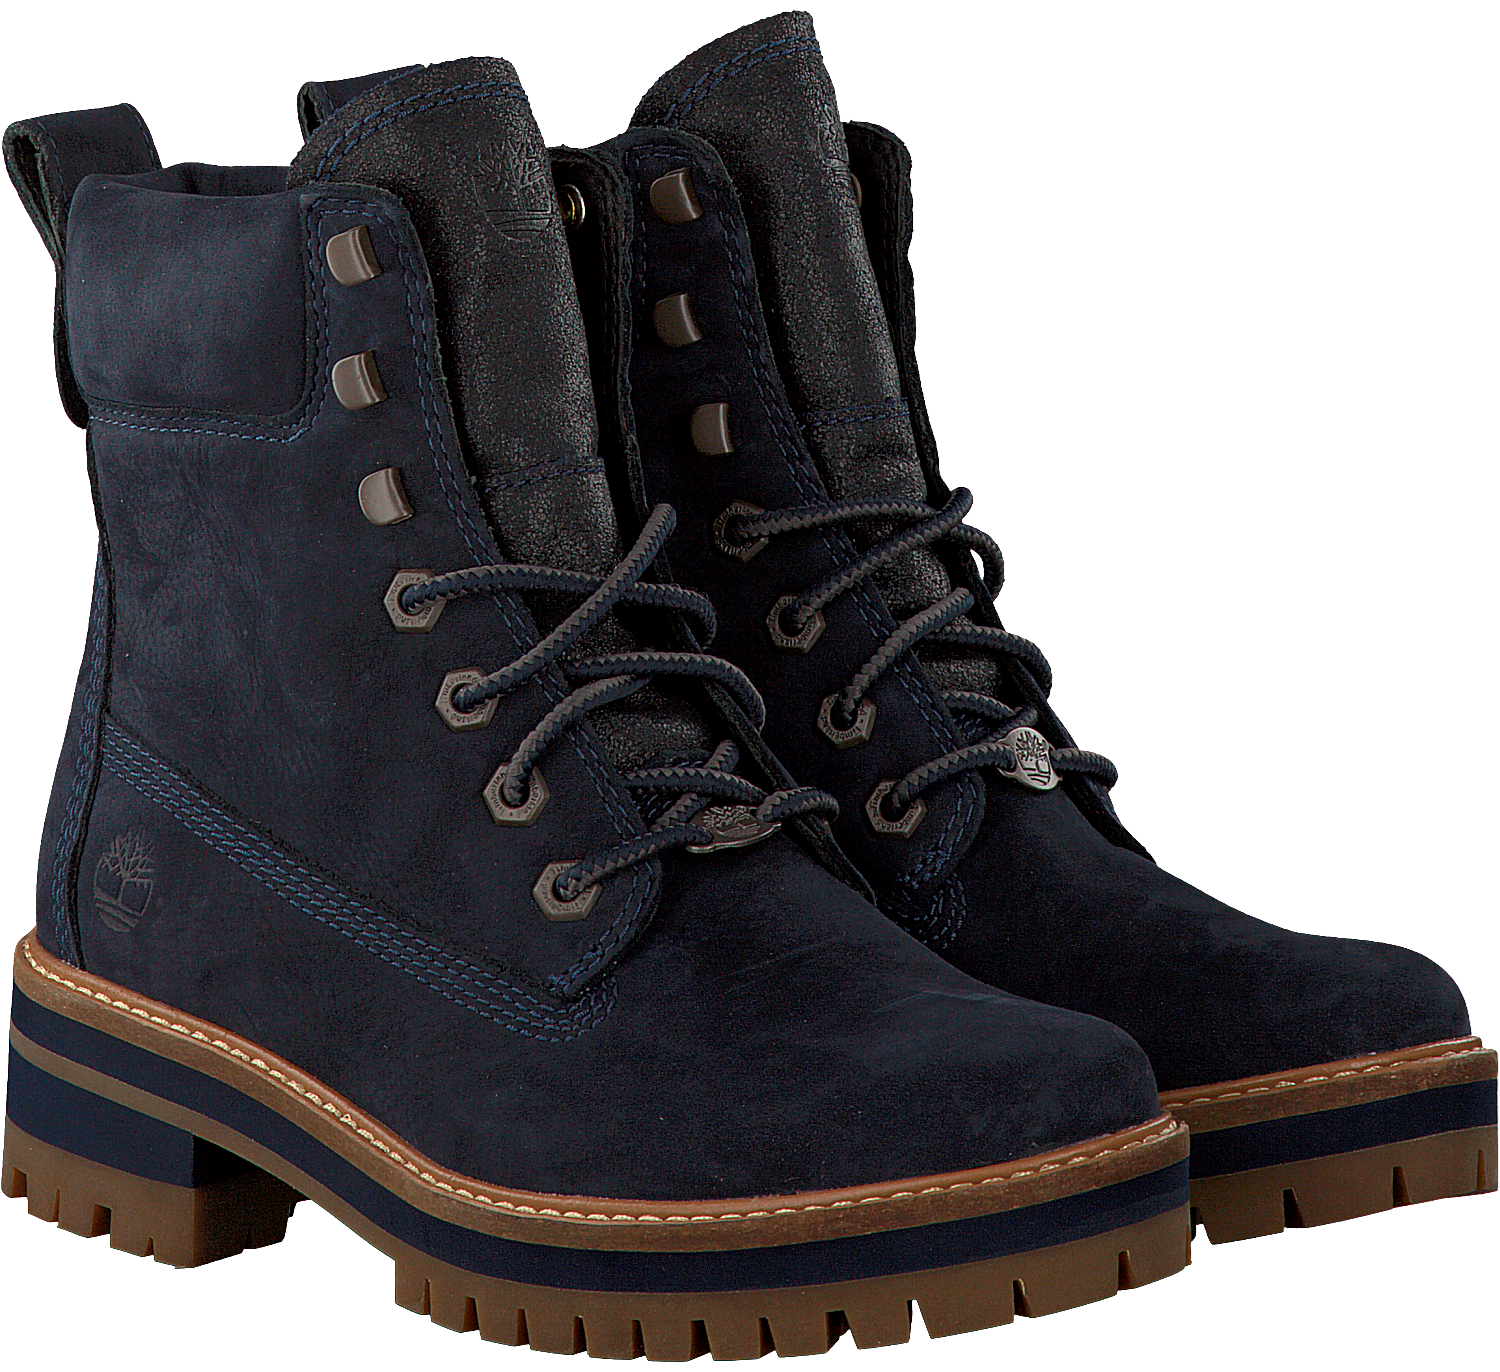 blaue timberland ankle boots courmayeur valley yb schuhmode online. Black Bedroom Furniture Sets. Home Design Ideas